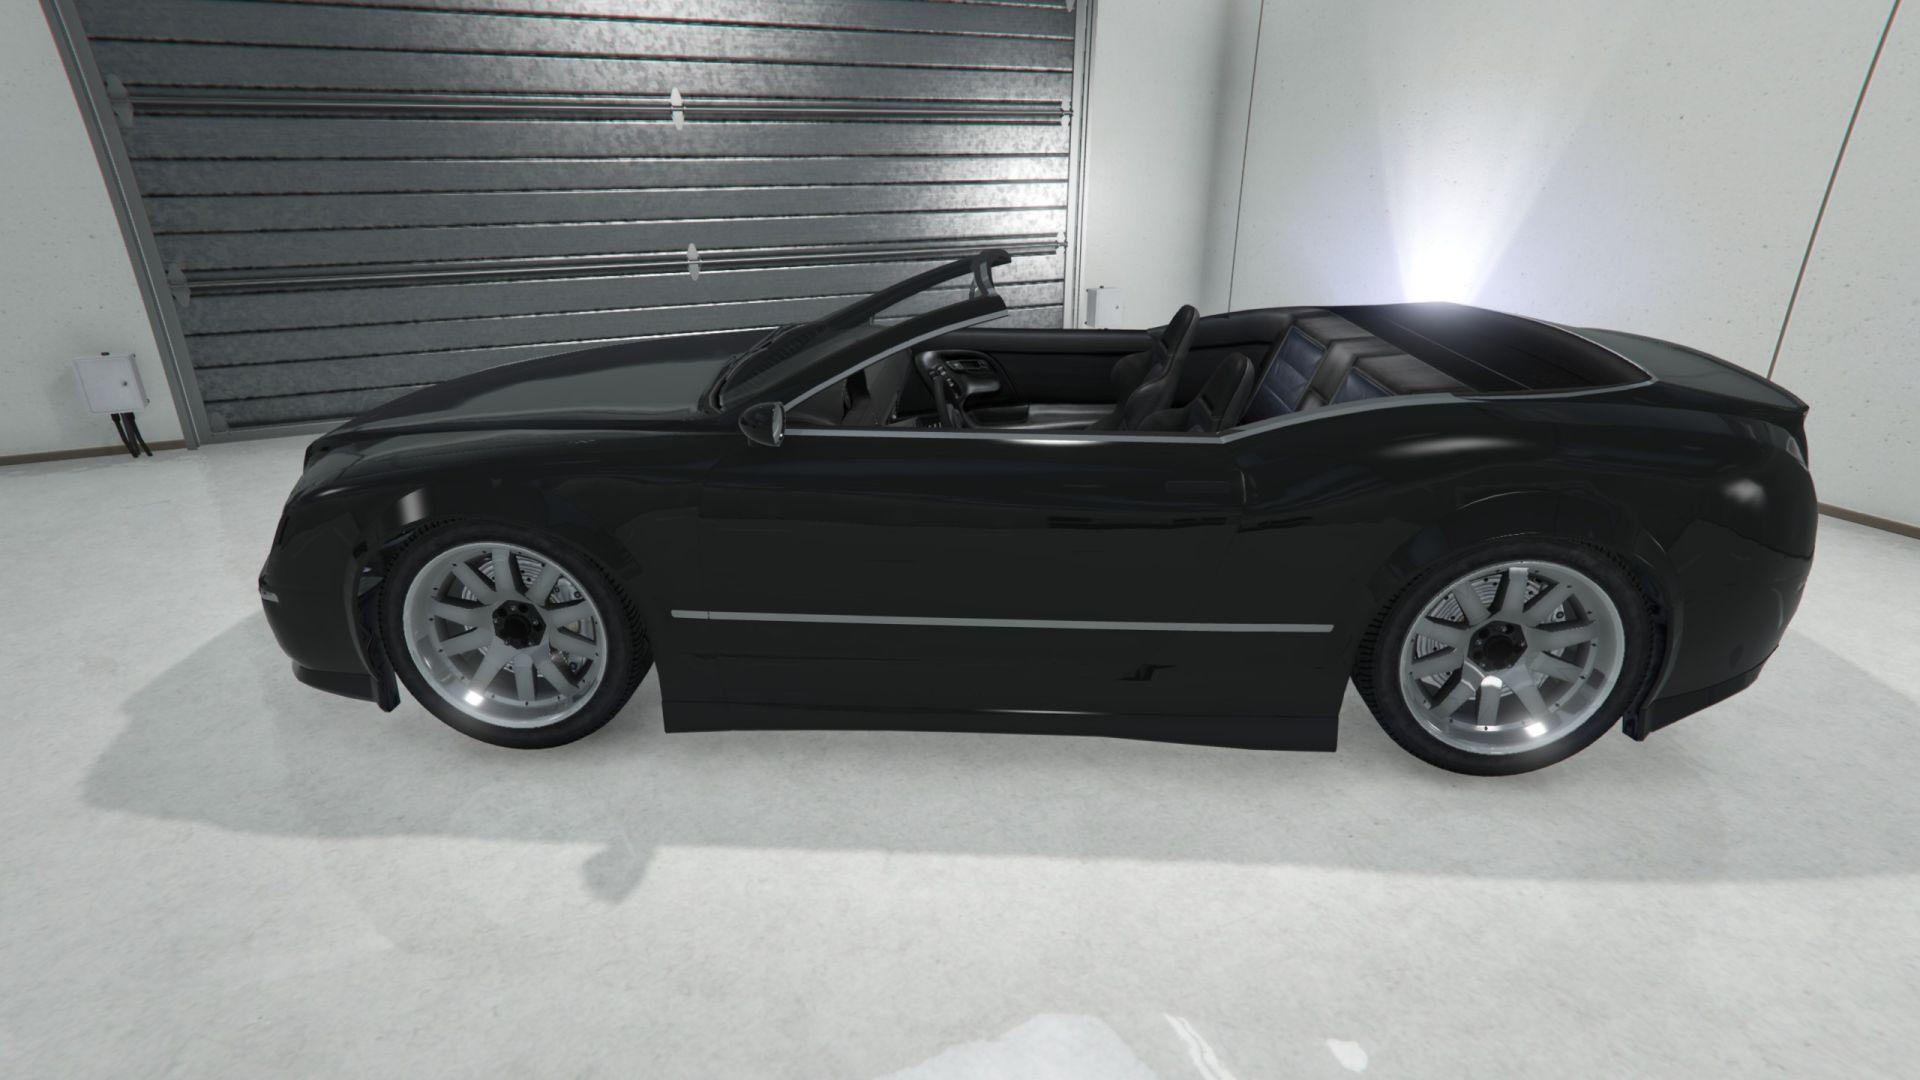 Custom Cognoscenti Cabrio by ElChimi